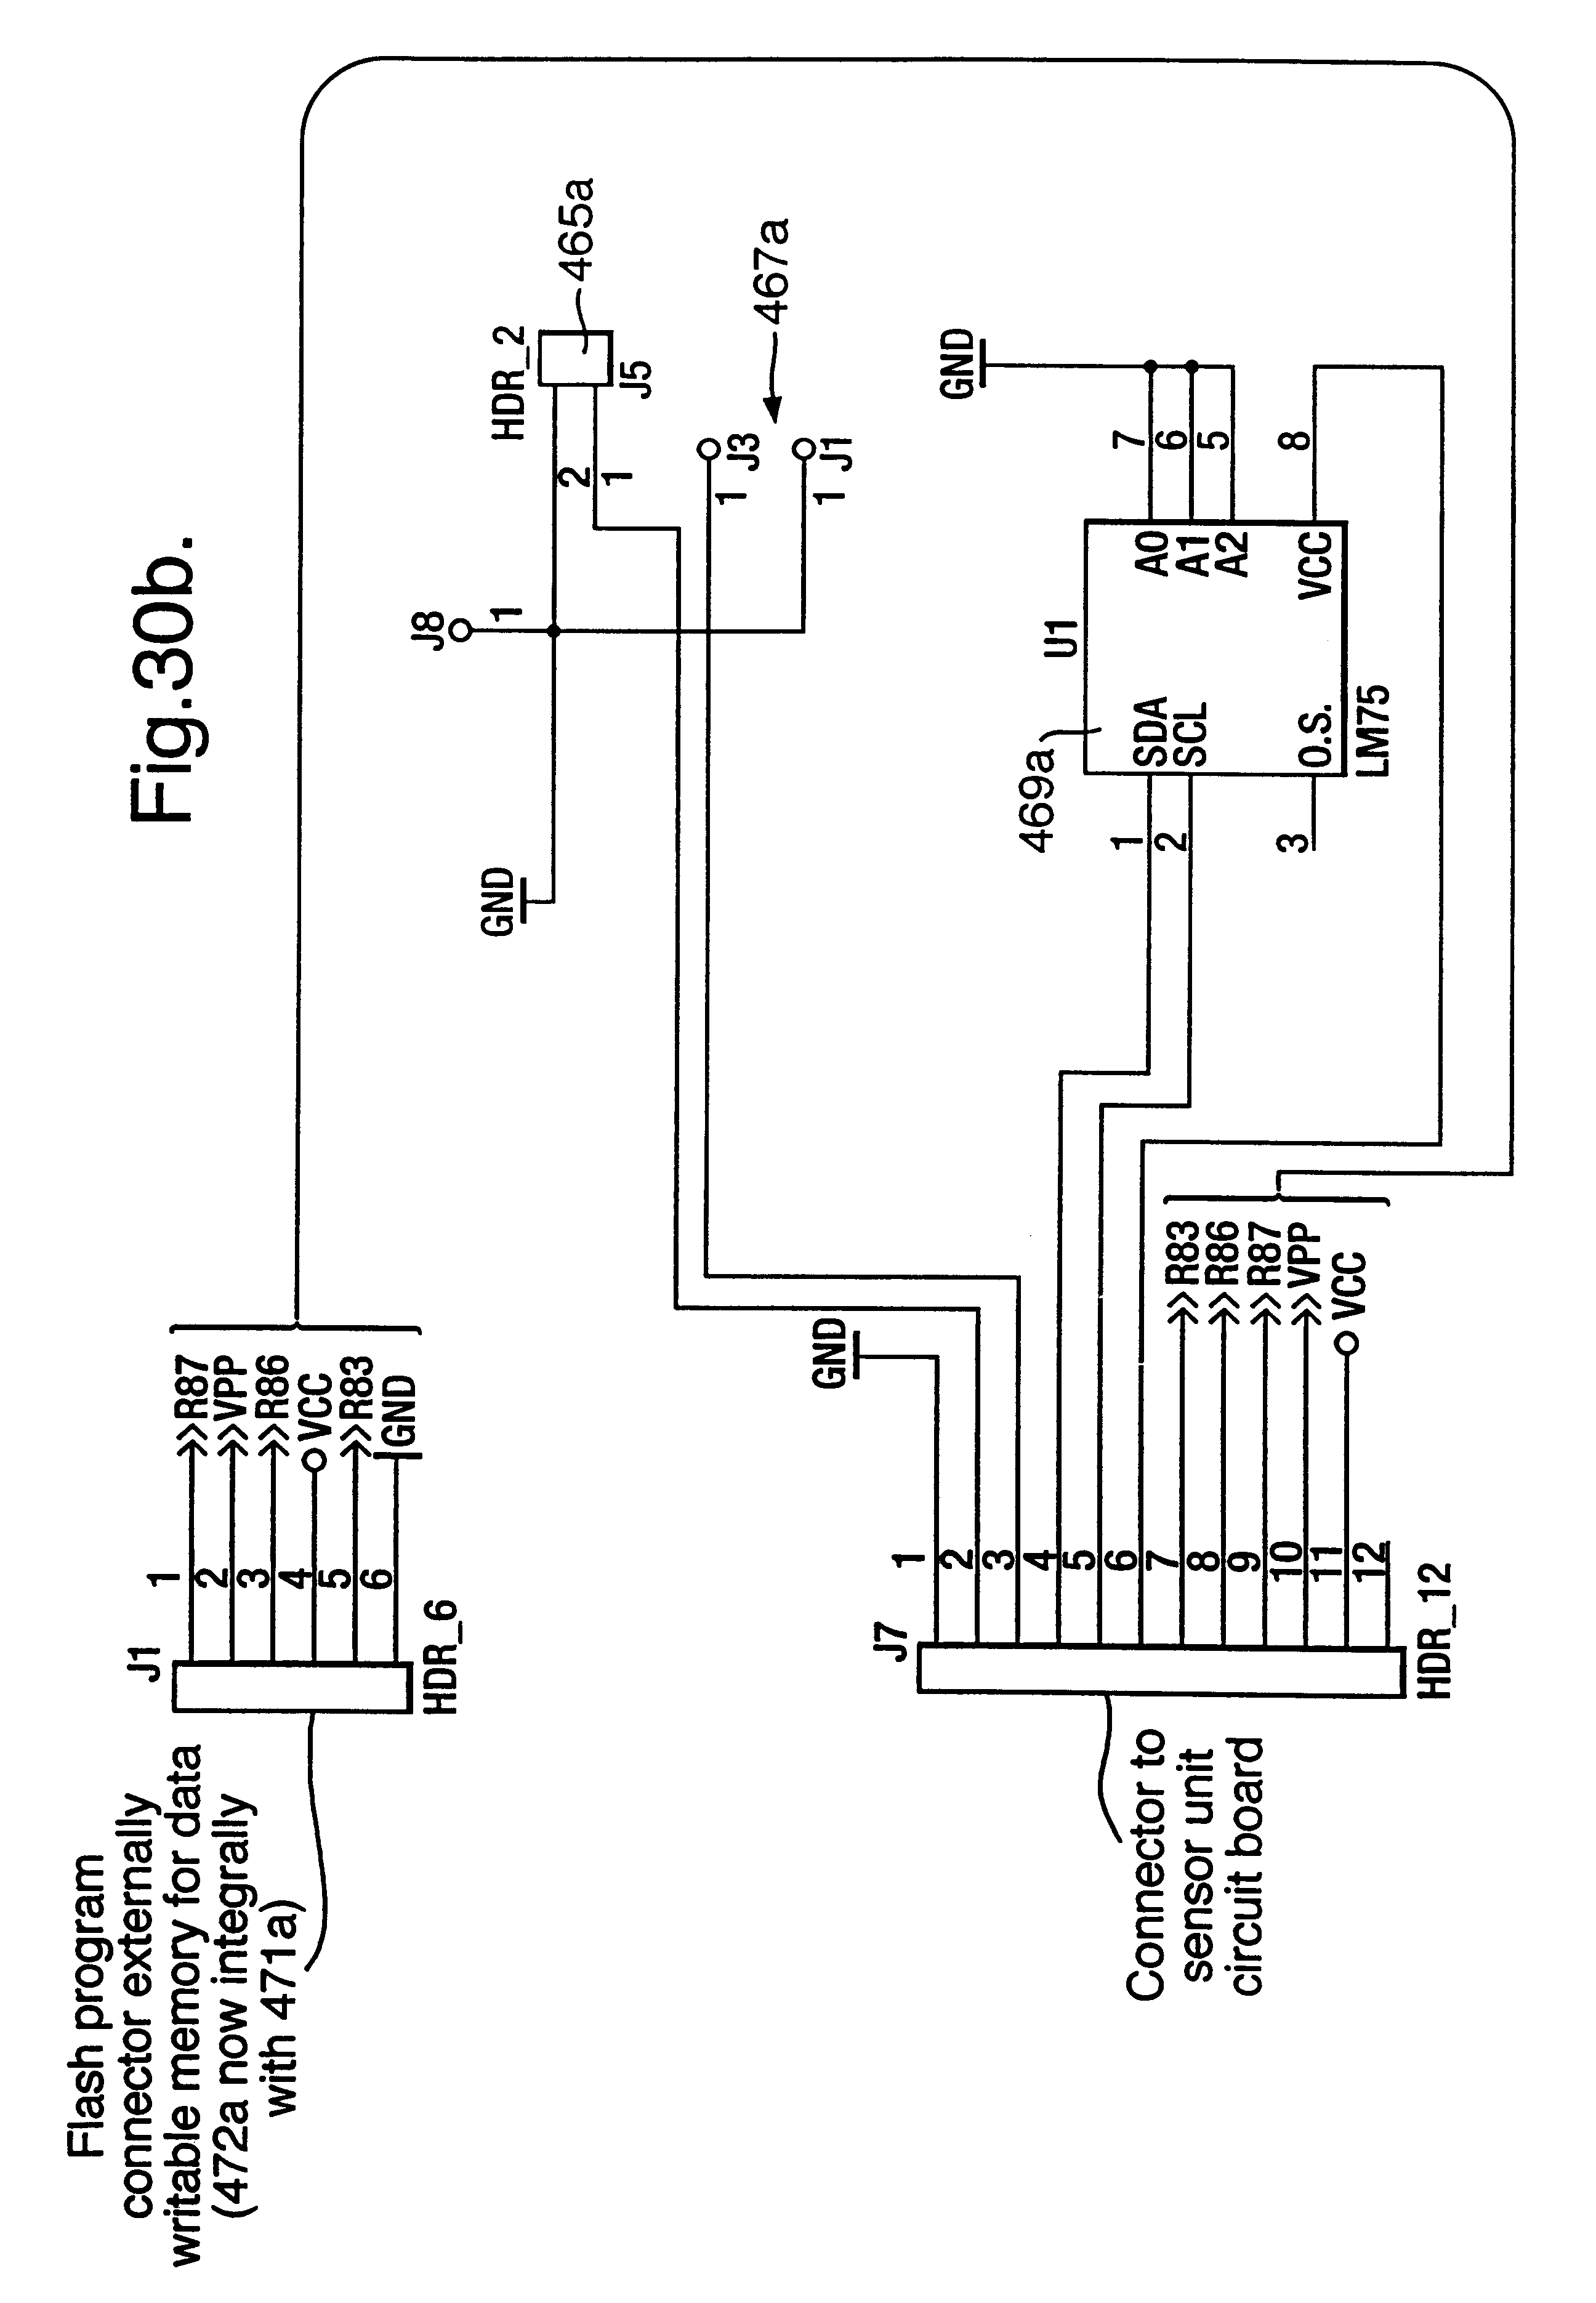 Patent Us6732018 Awning Assembly And Control System Google Patents Place The Circuit Board In Cavity Slot Battery Pack Into Drawing